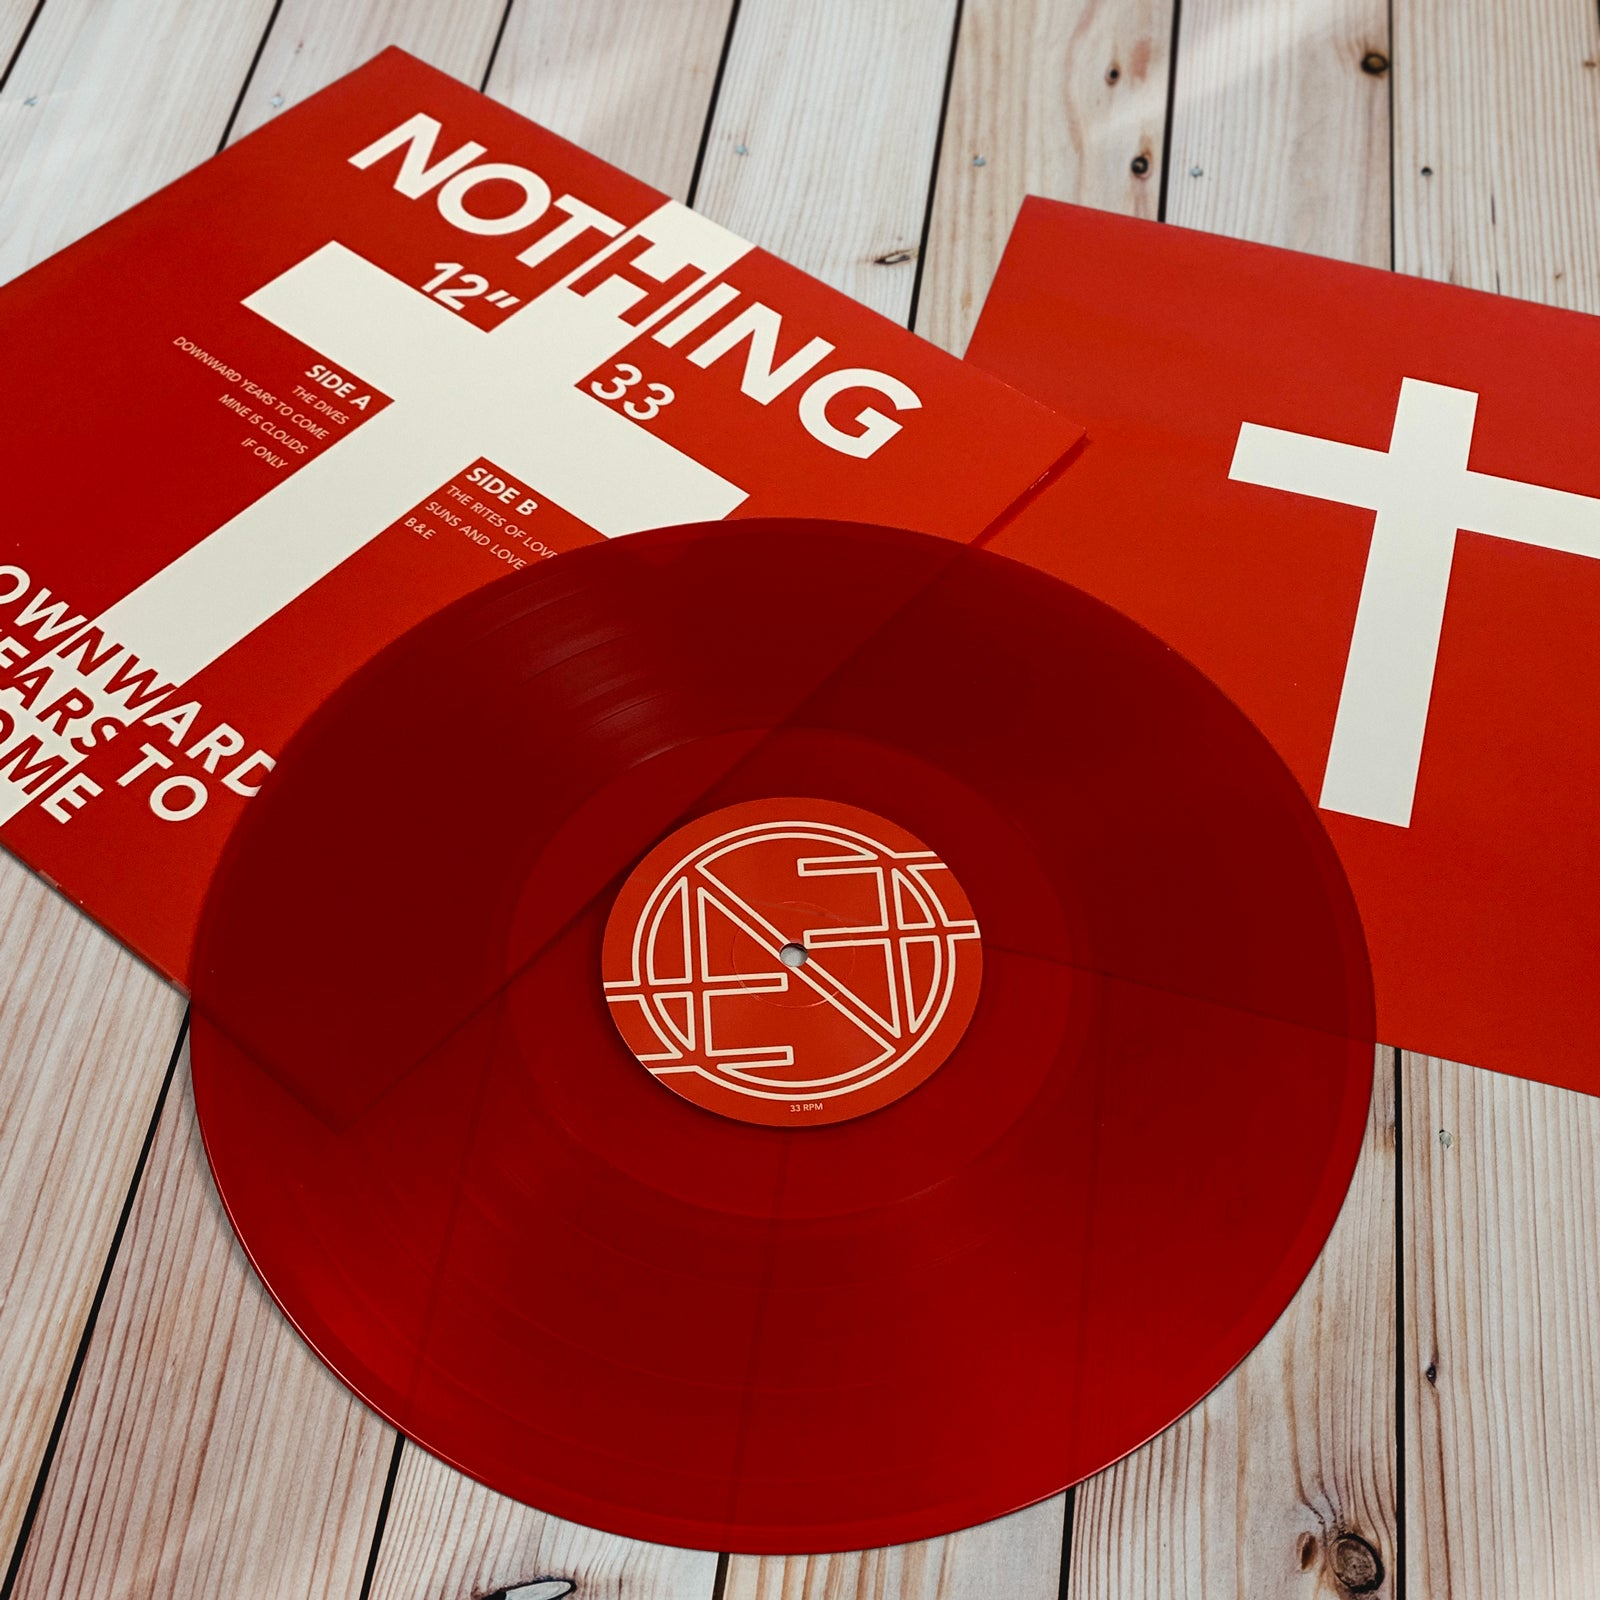 NOTHING - DOWNWARD YEARS TO COME - 12 VINYL